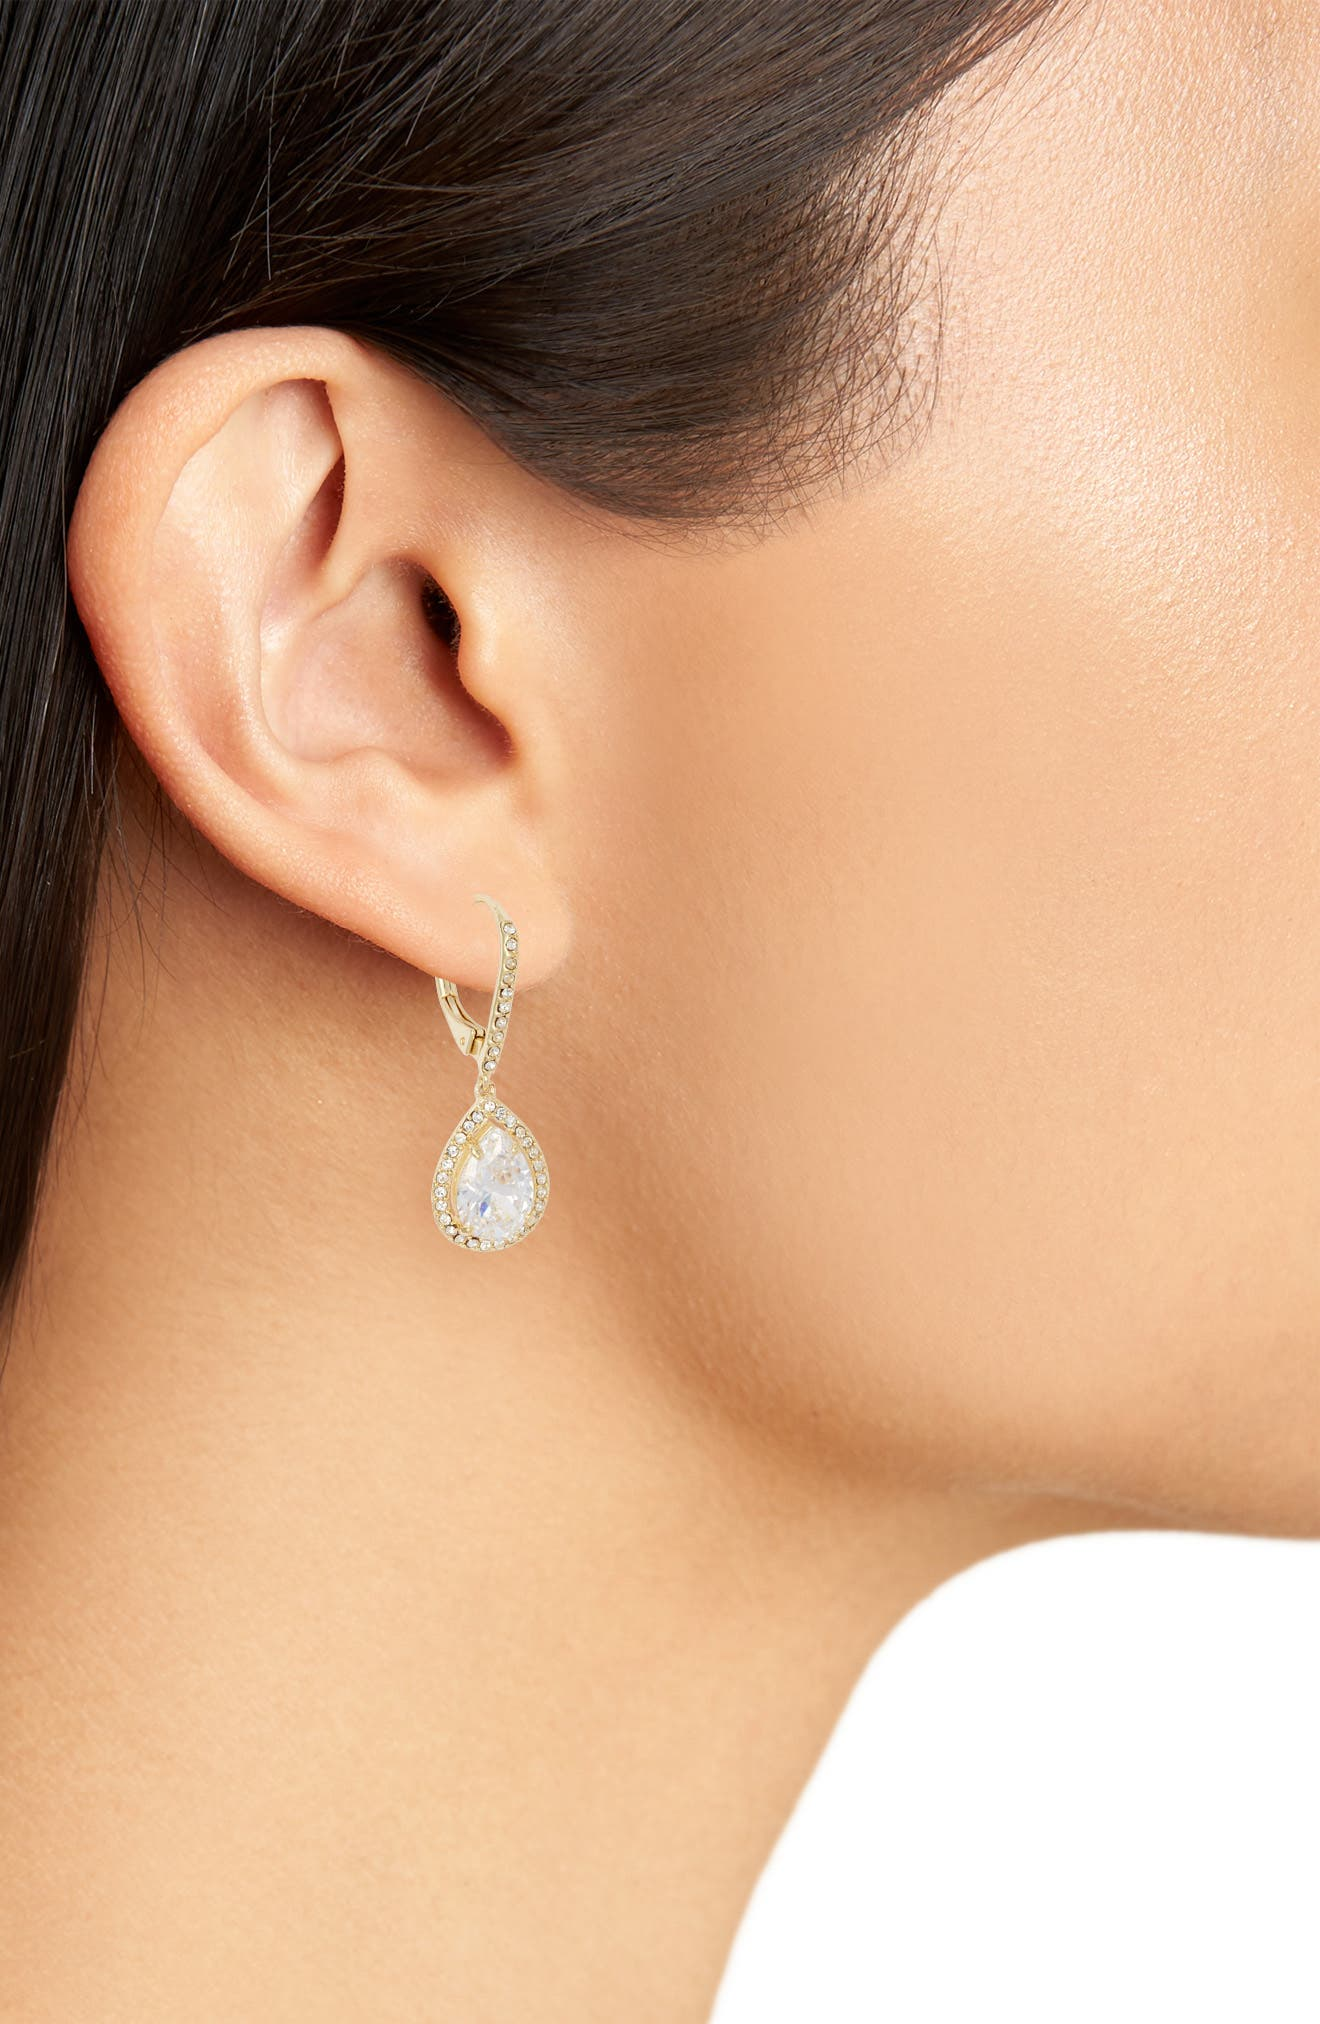 Cubic Zirconia Drop Earrings,                             Alternate thumbnail 2, color,                             CLEAR- GOLD